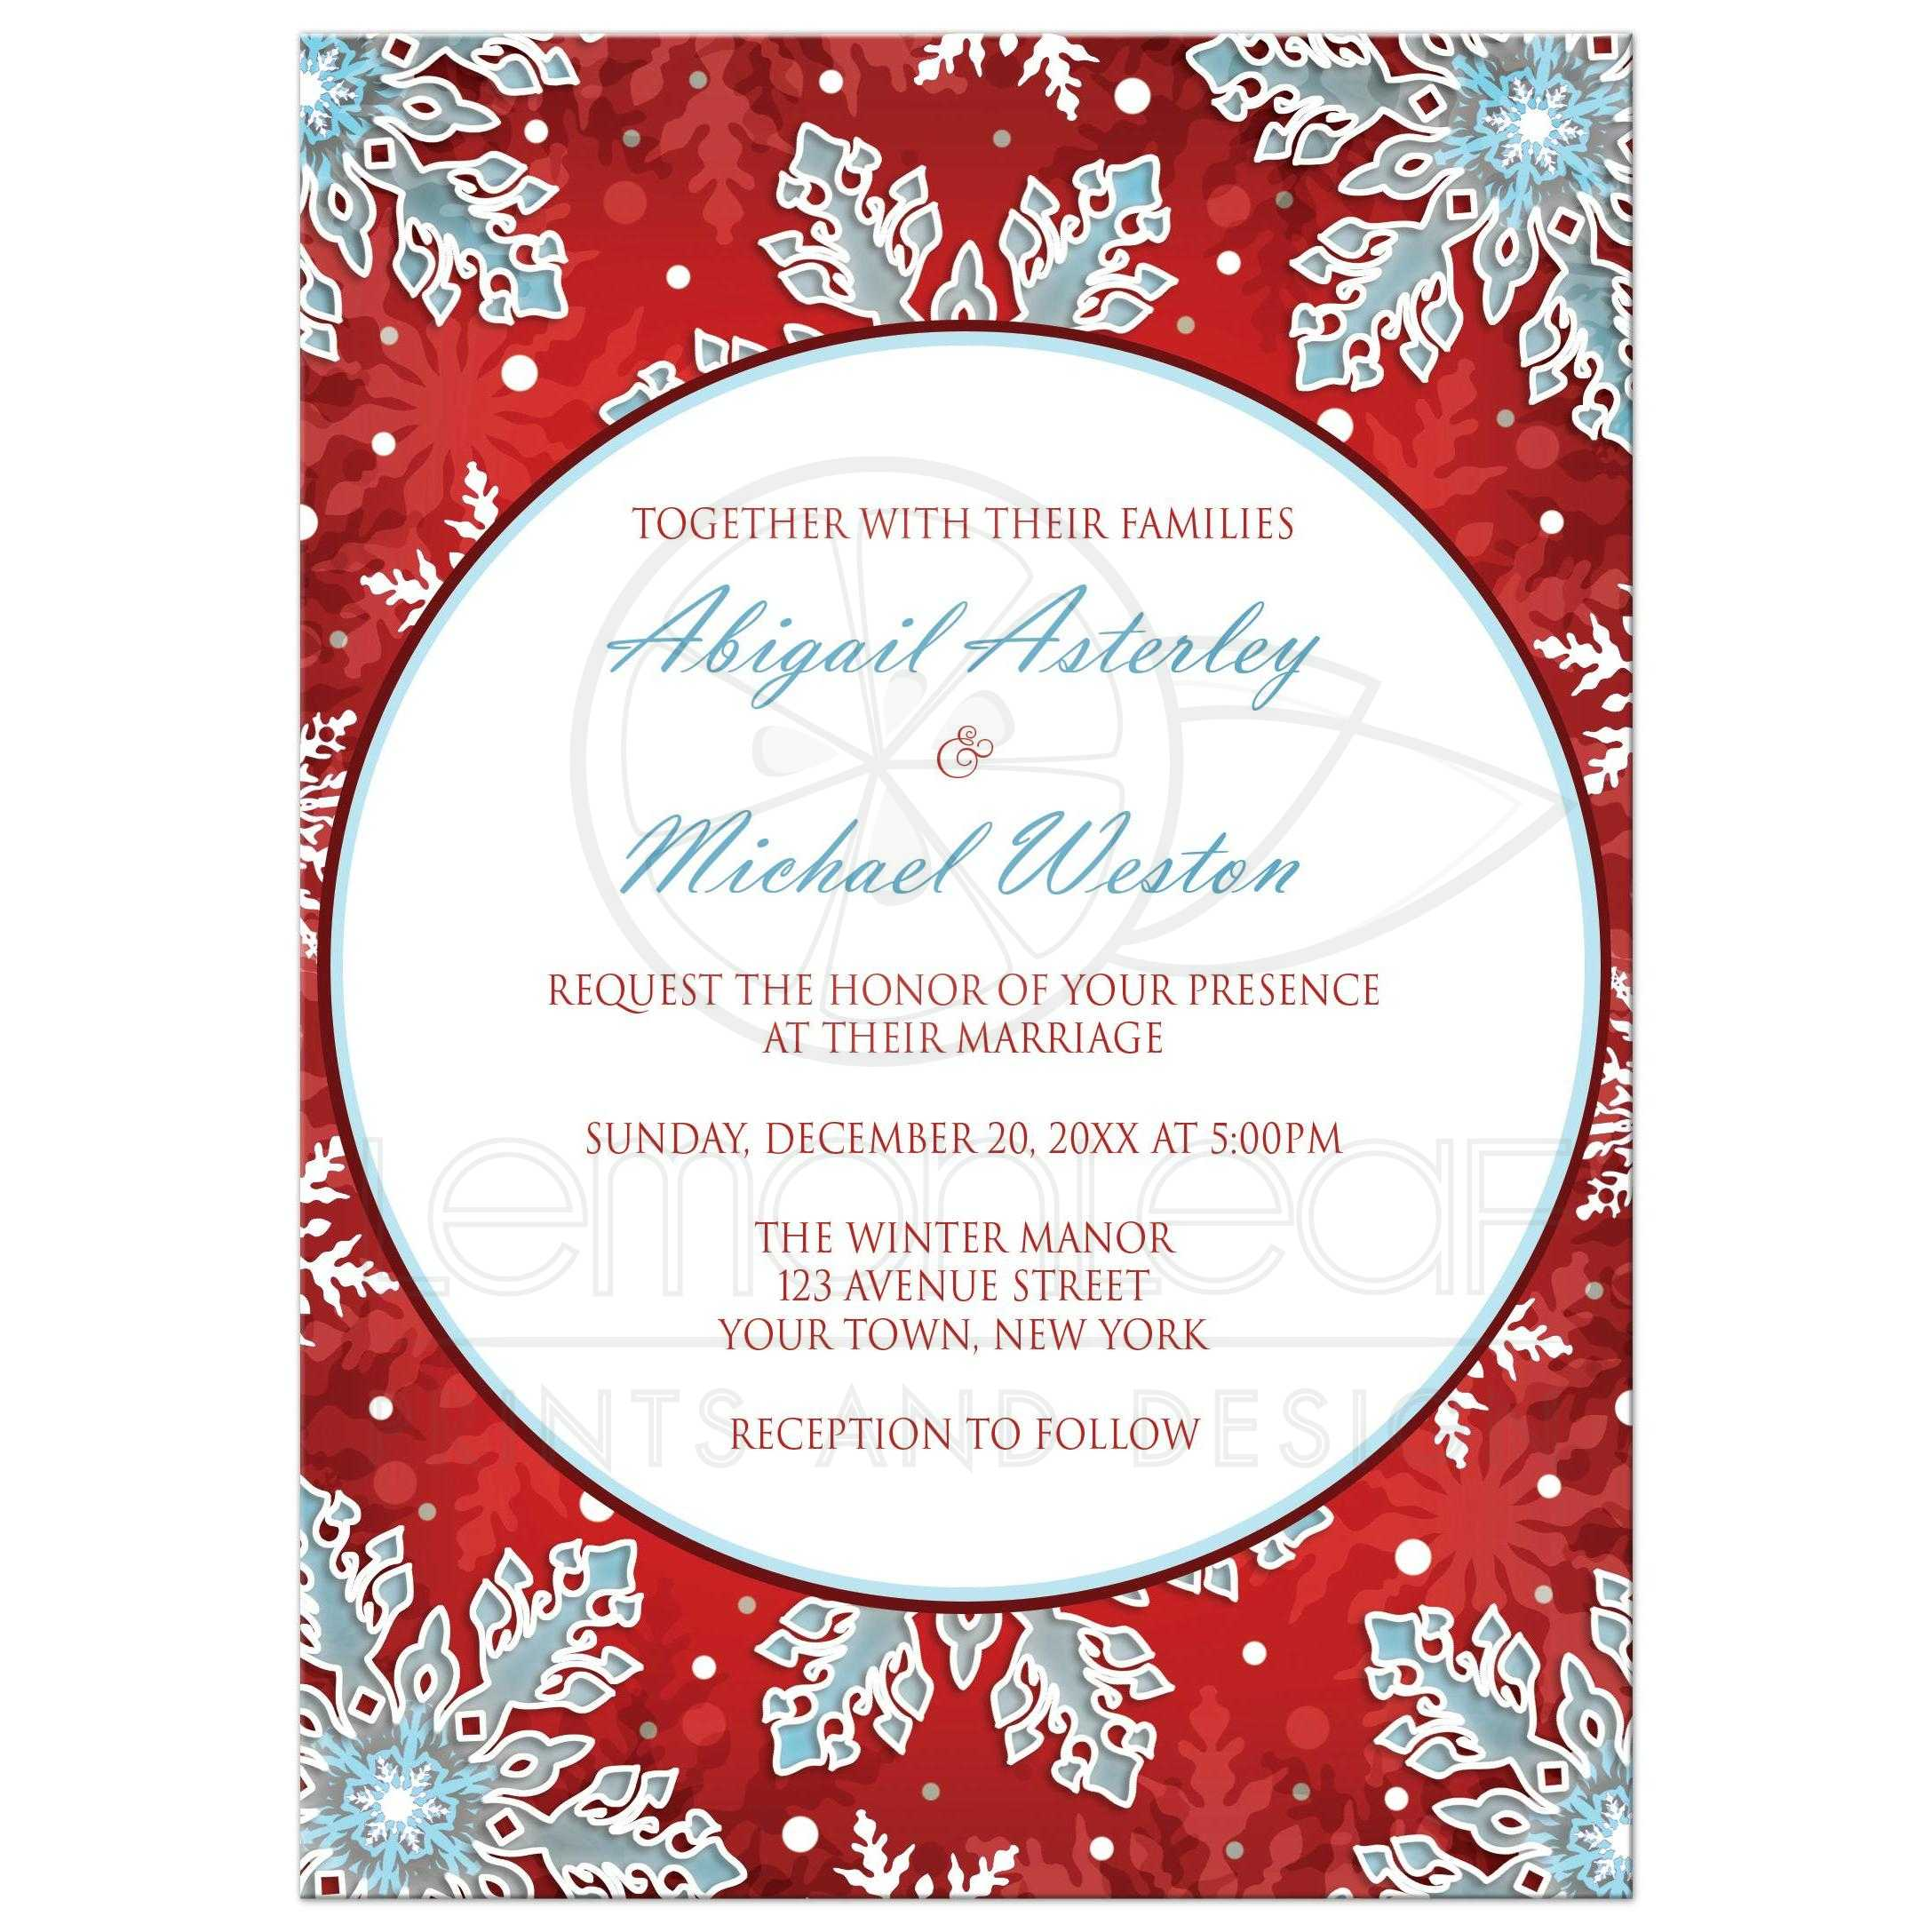 Wedding Invitations - Modern Red White Blue Snowflake